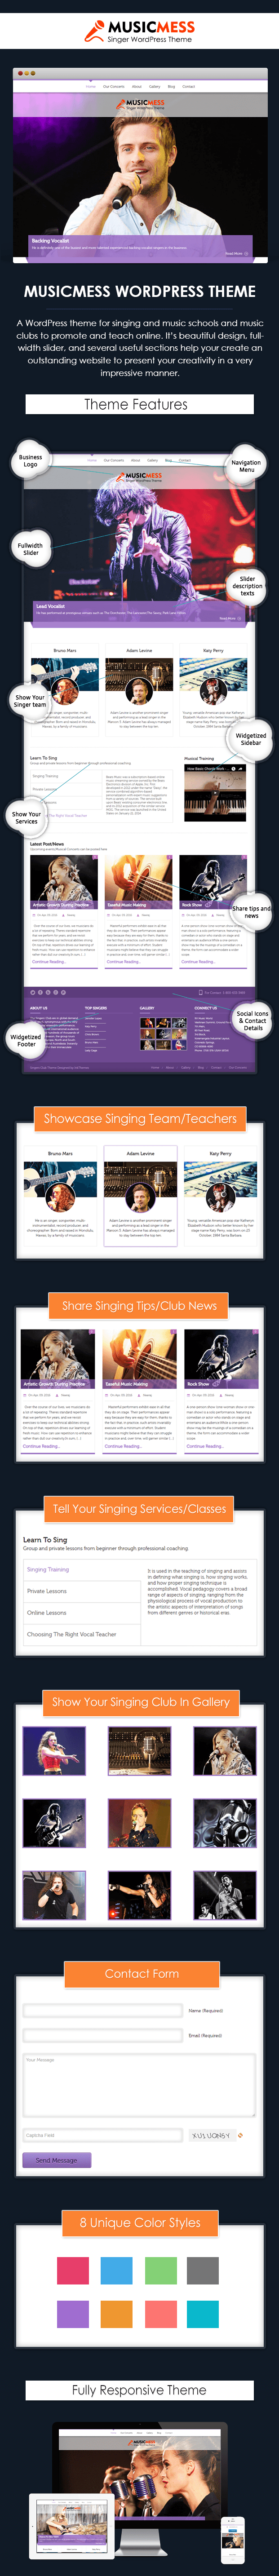 Music Mess WordPress Theme